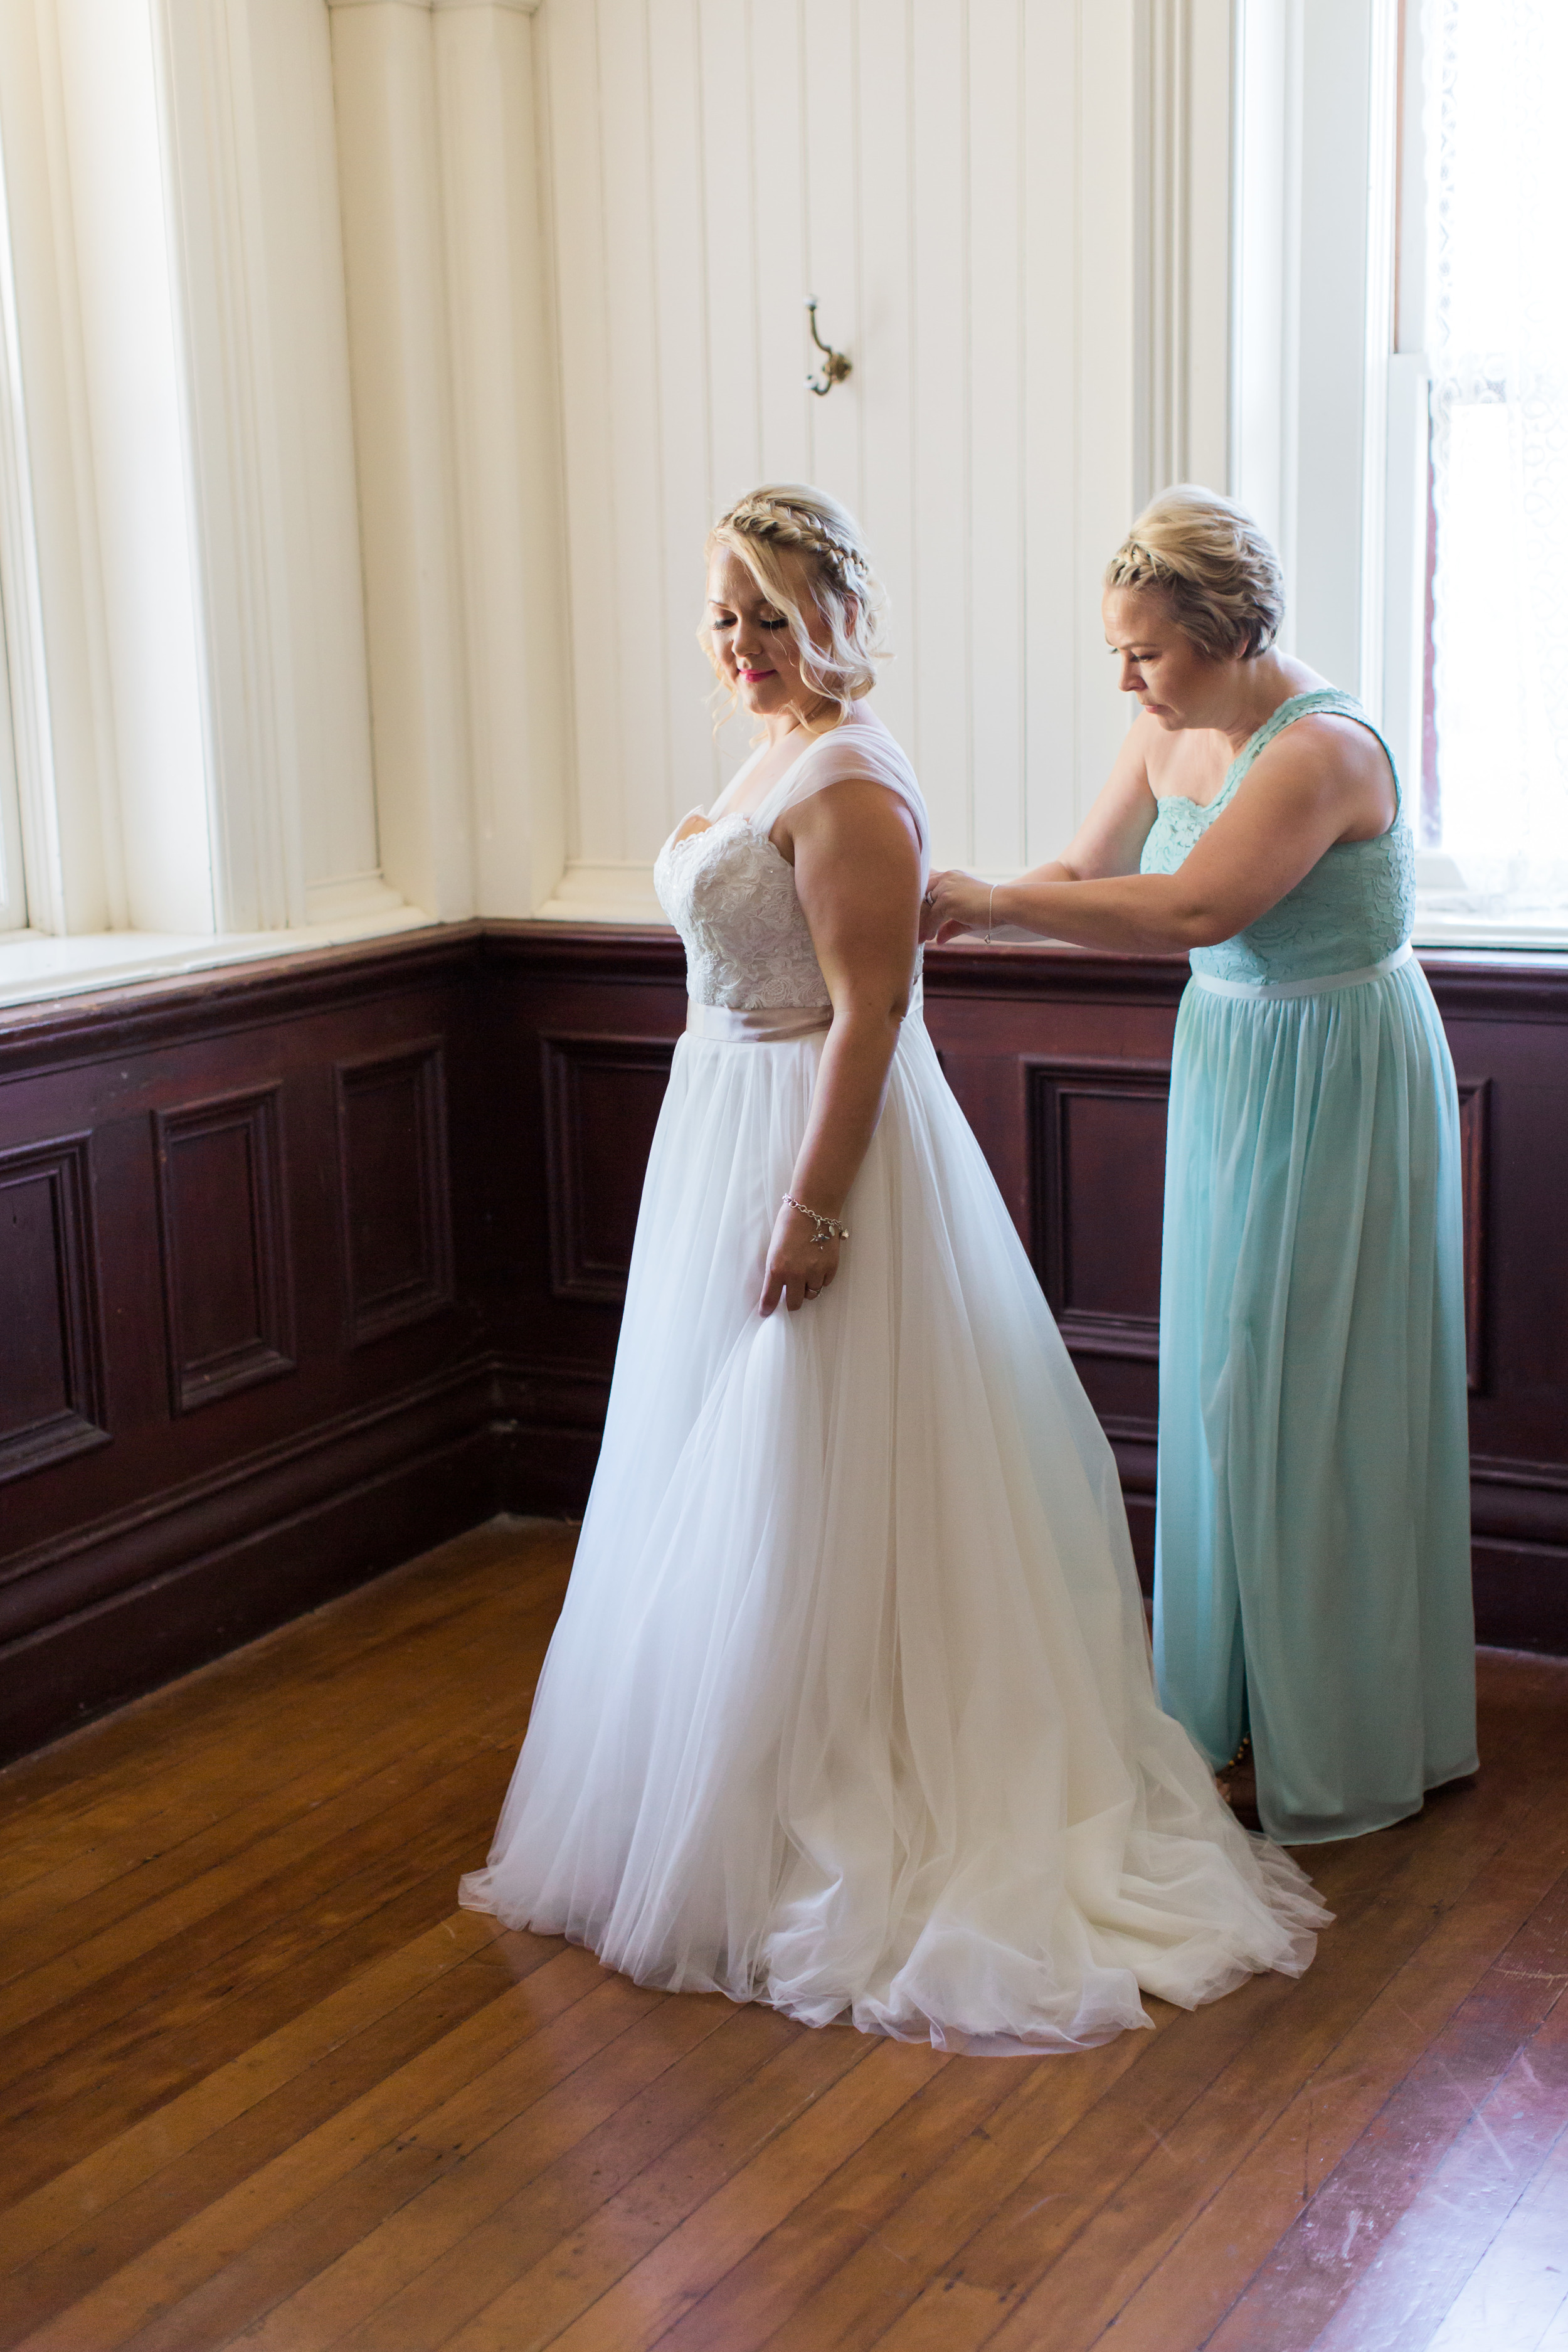 southern-inspired-wedding-at-ravenswood-historic-site-4330.jpg